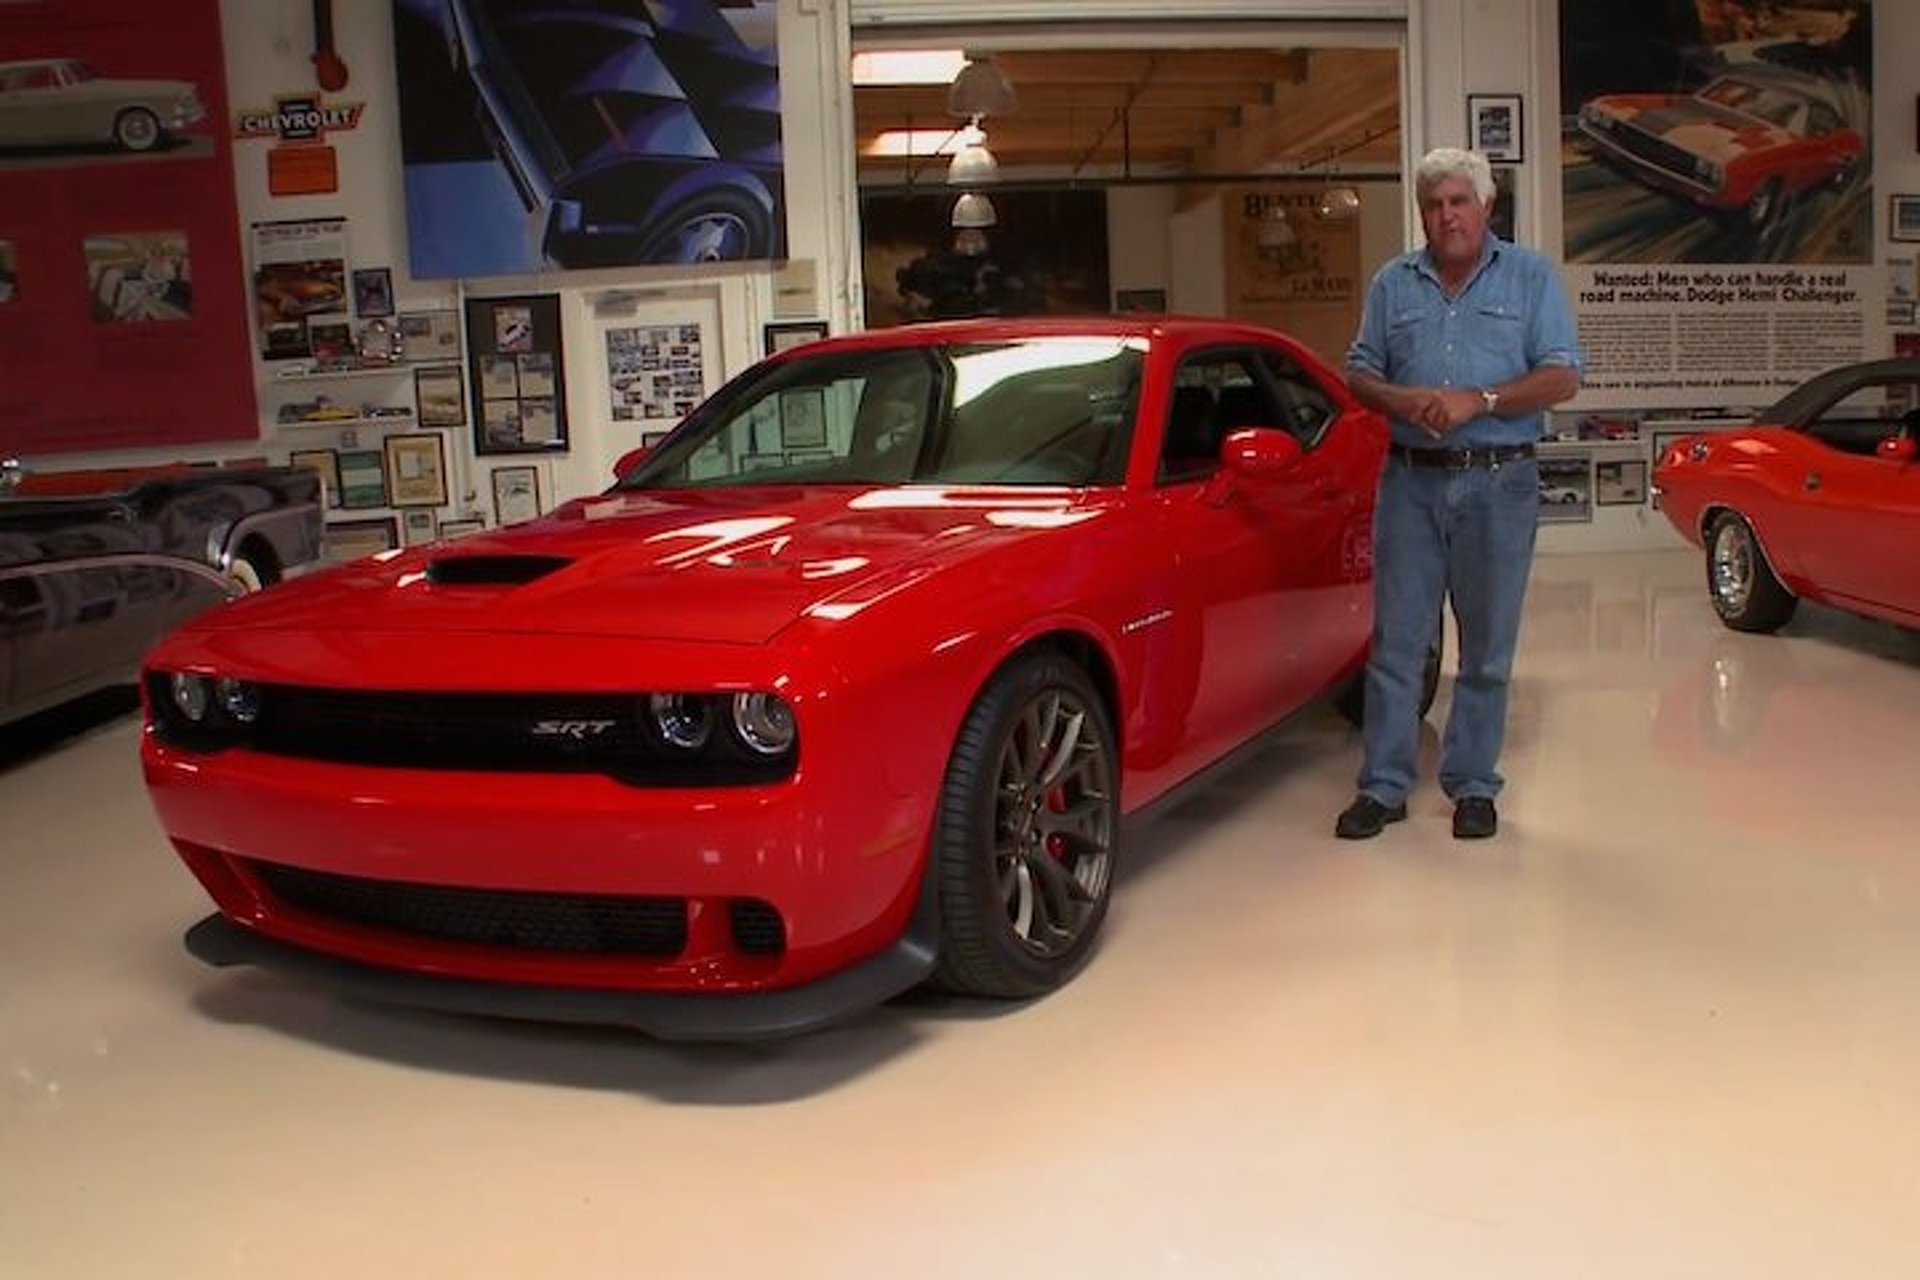 Jay Leno Drives the Hellcat Challenger and Does Lots of Burnouts [Video]